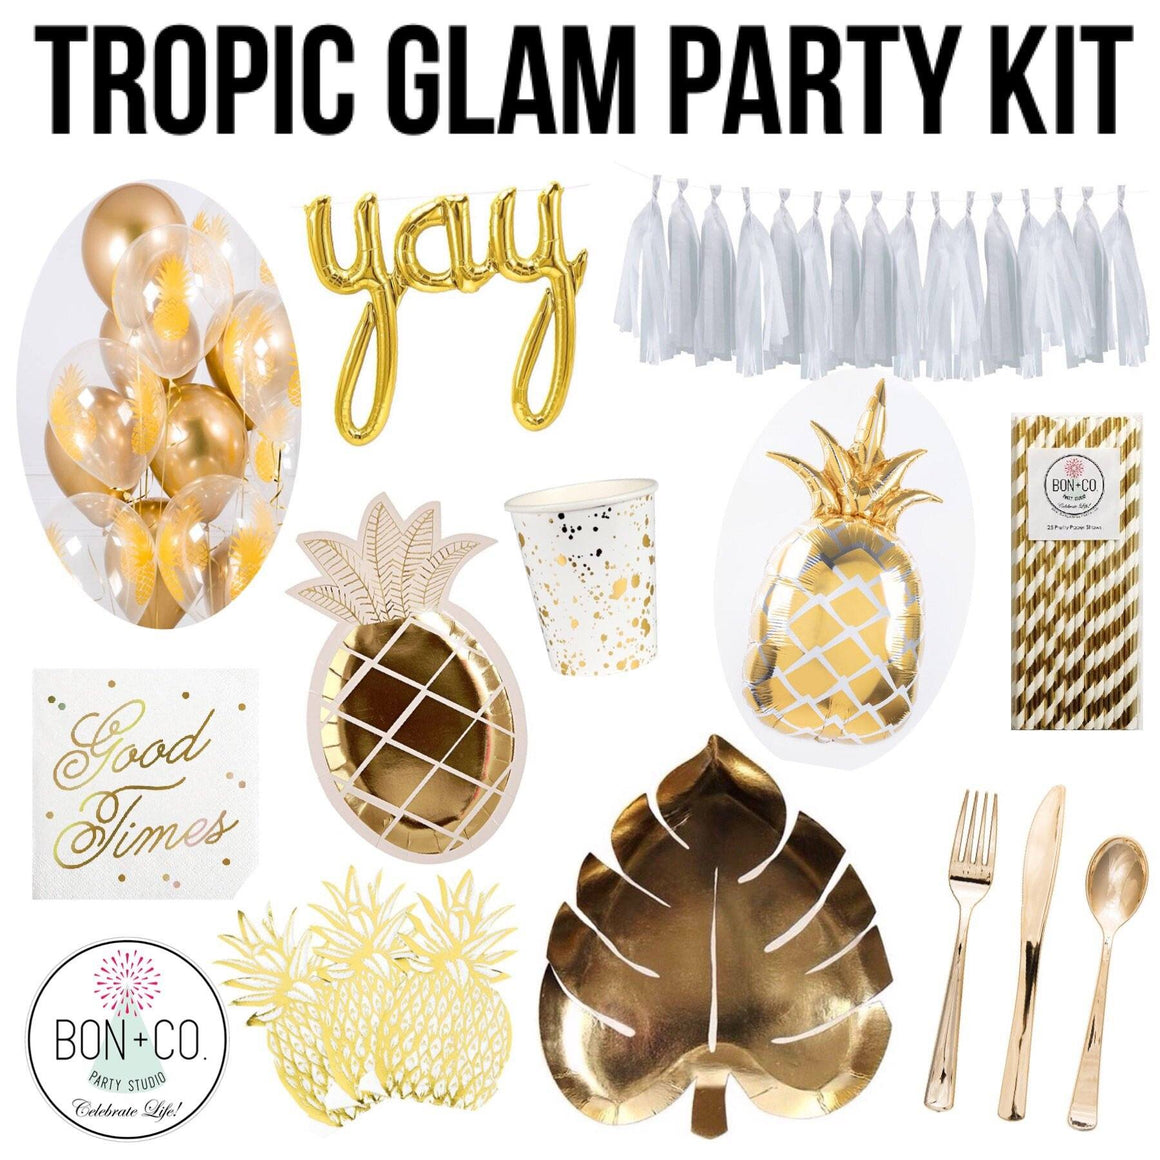 PARTY KIT - TROPIC GLAM